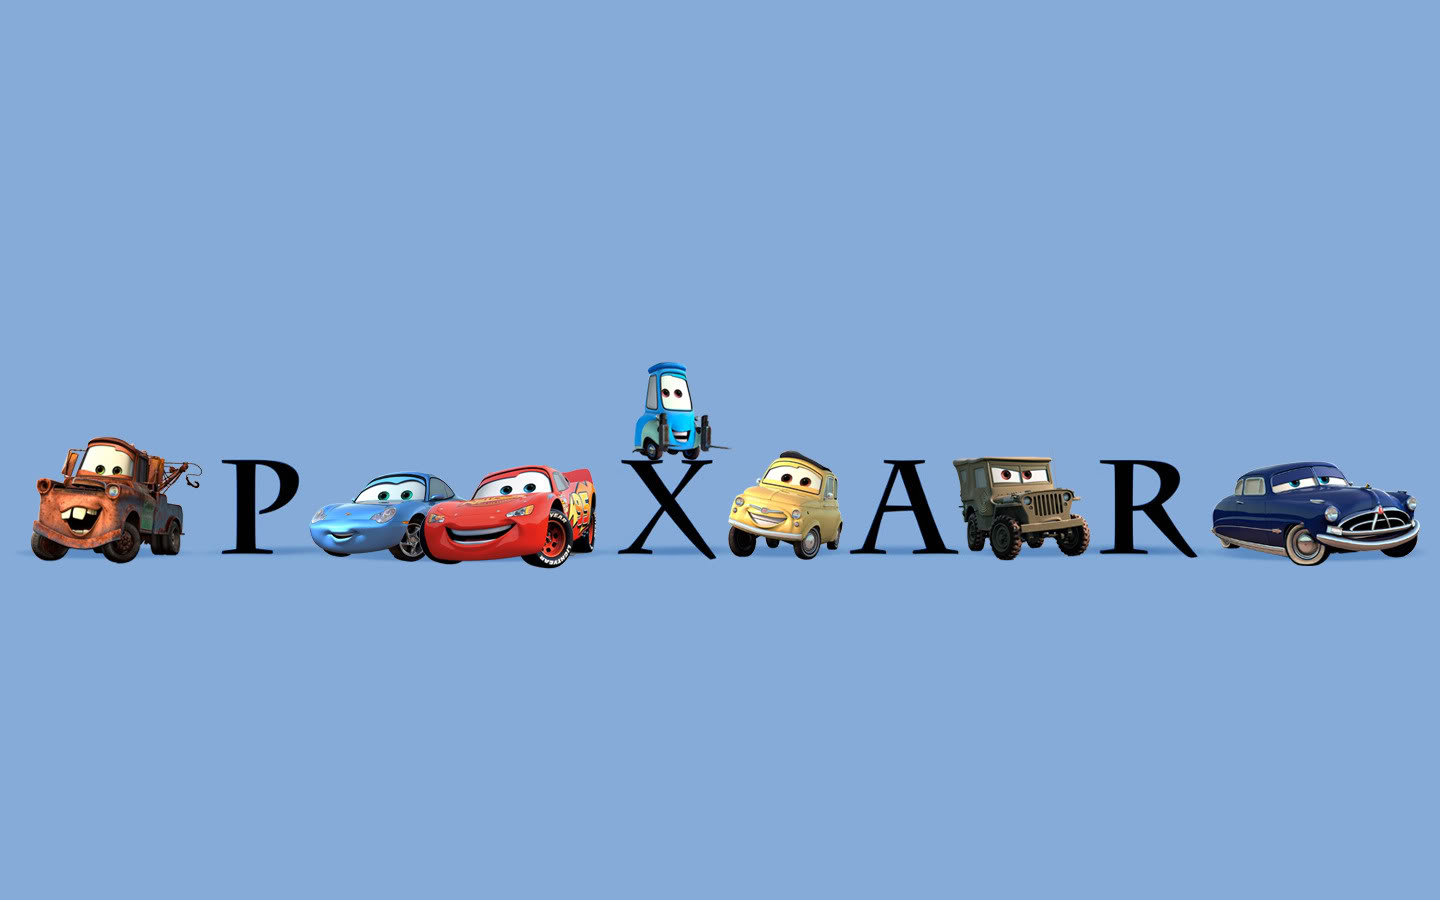 Download Pixar Cars Backgrounds Wallpaper Pixar Cars Backgrounds Hd